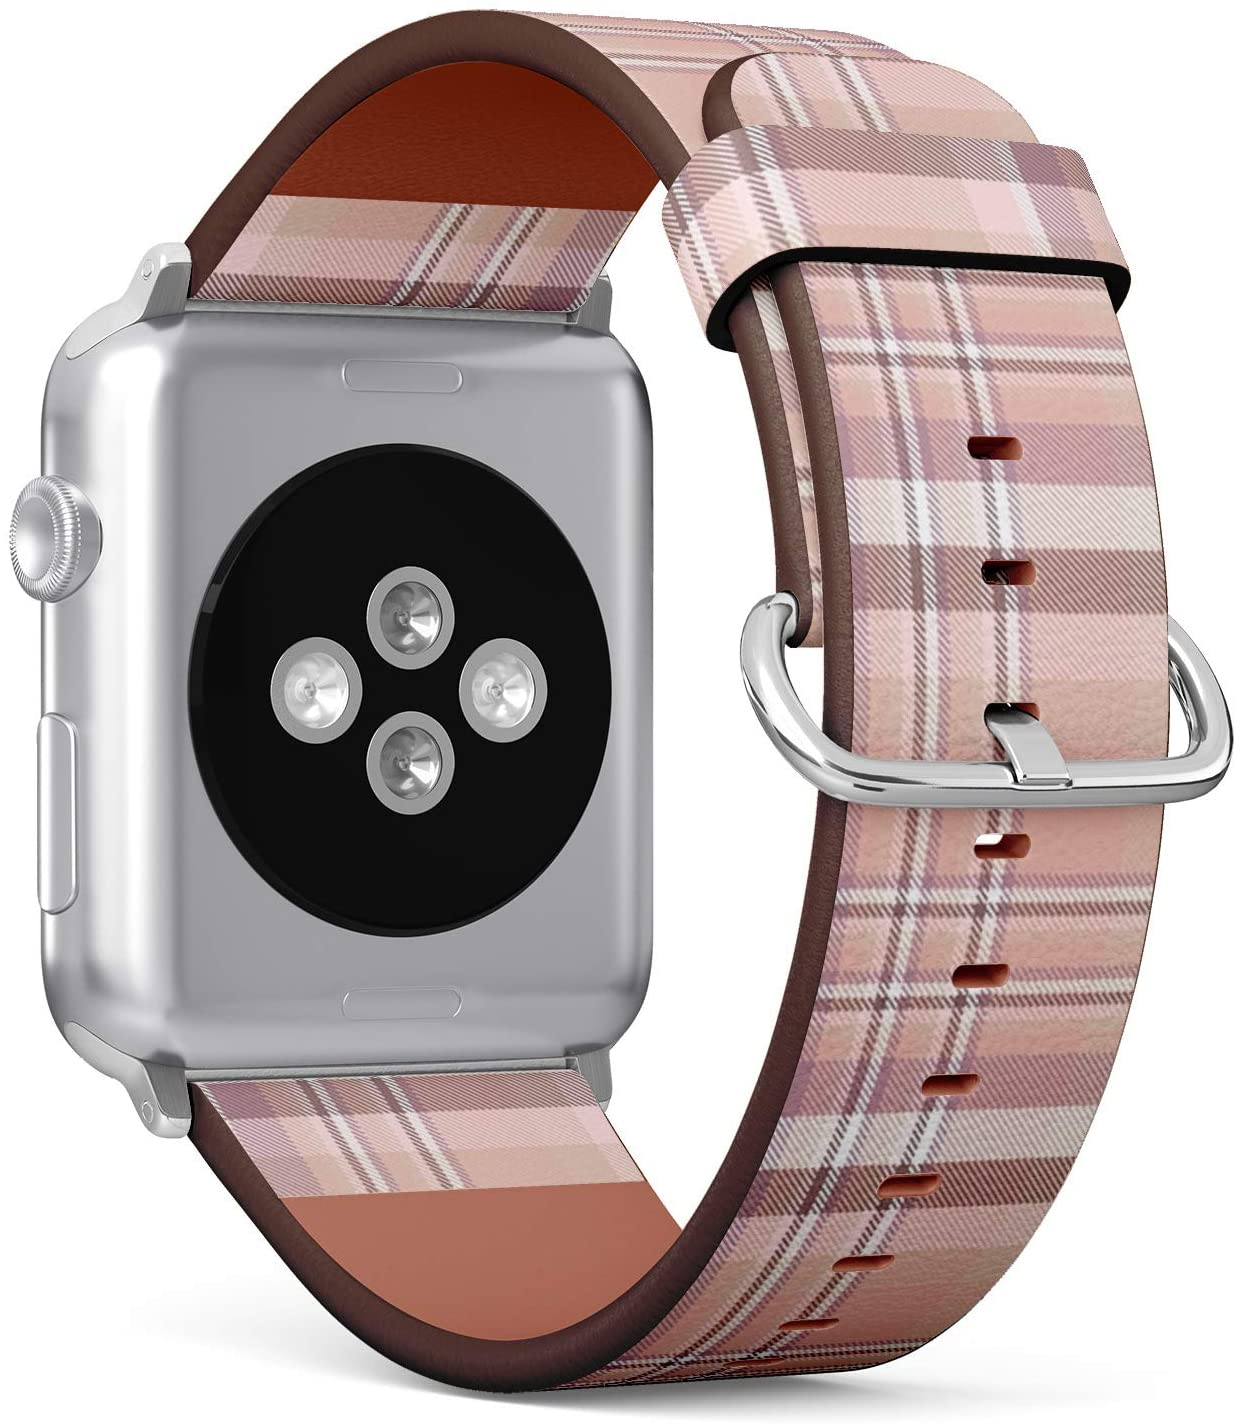 Compatible with Apple Watch Series 5, 4, 3, 2, 1 (Small Version 38/40 mm) Leather Wristband Bracelet Replacement Accessory Band + Adapters - Plaid Check Pink Pale